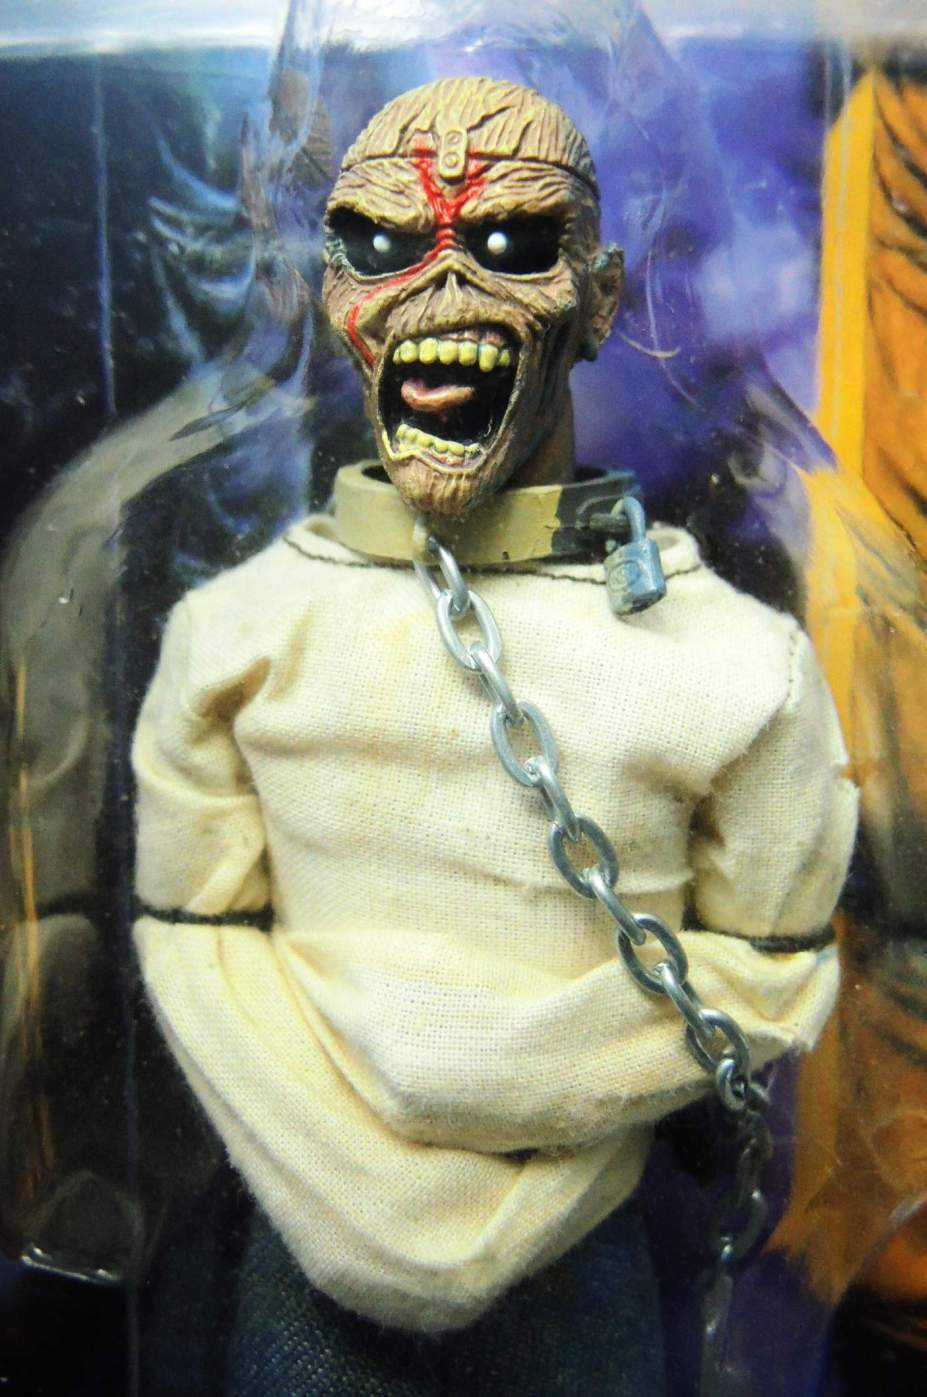 NECA Iron Maiden 8 inch Clothed Figure - Piece of Mind - 8675-8670CCVAVG